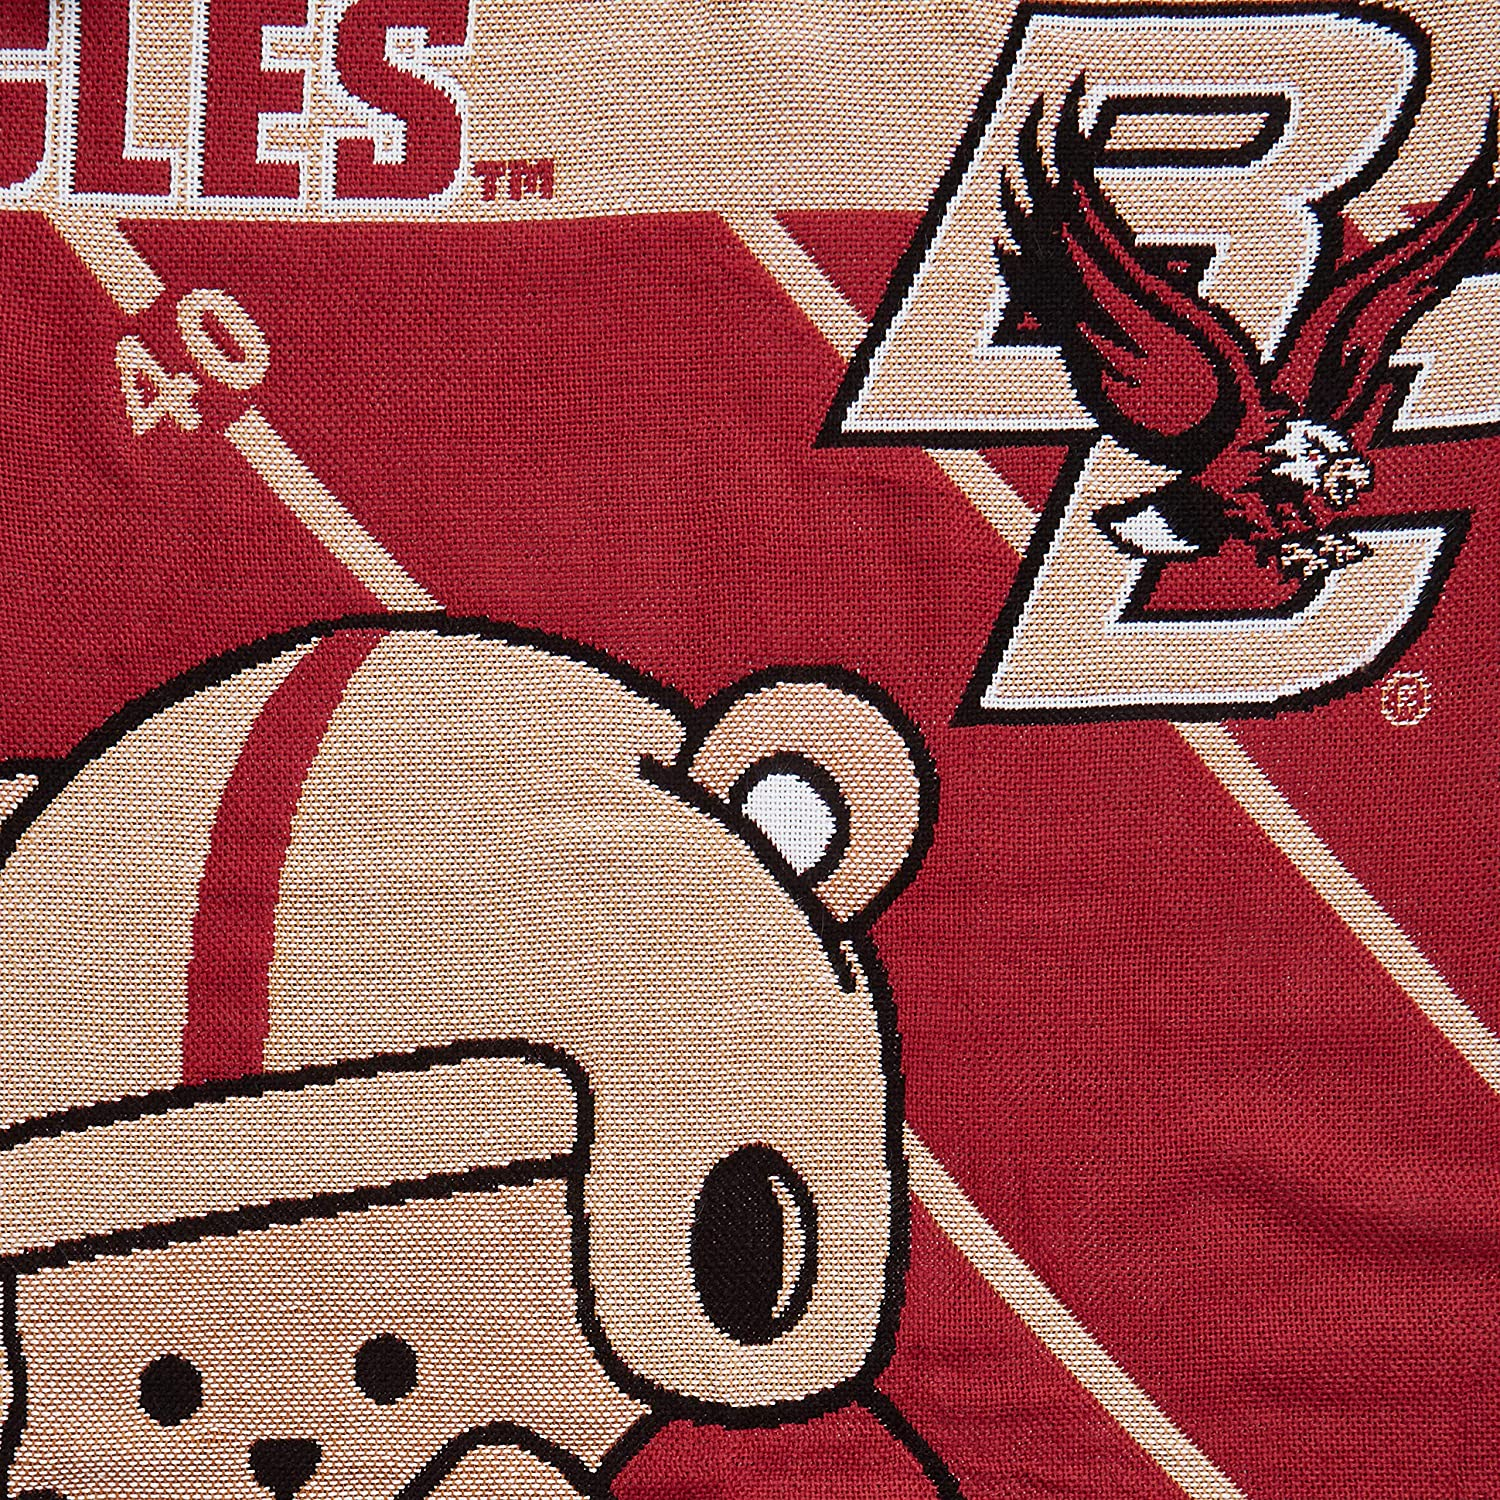 36 x 46 Officially Licensed NCAA Washington State Cougars Fullback Jacquard Baby Throw Blanket Multi Color